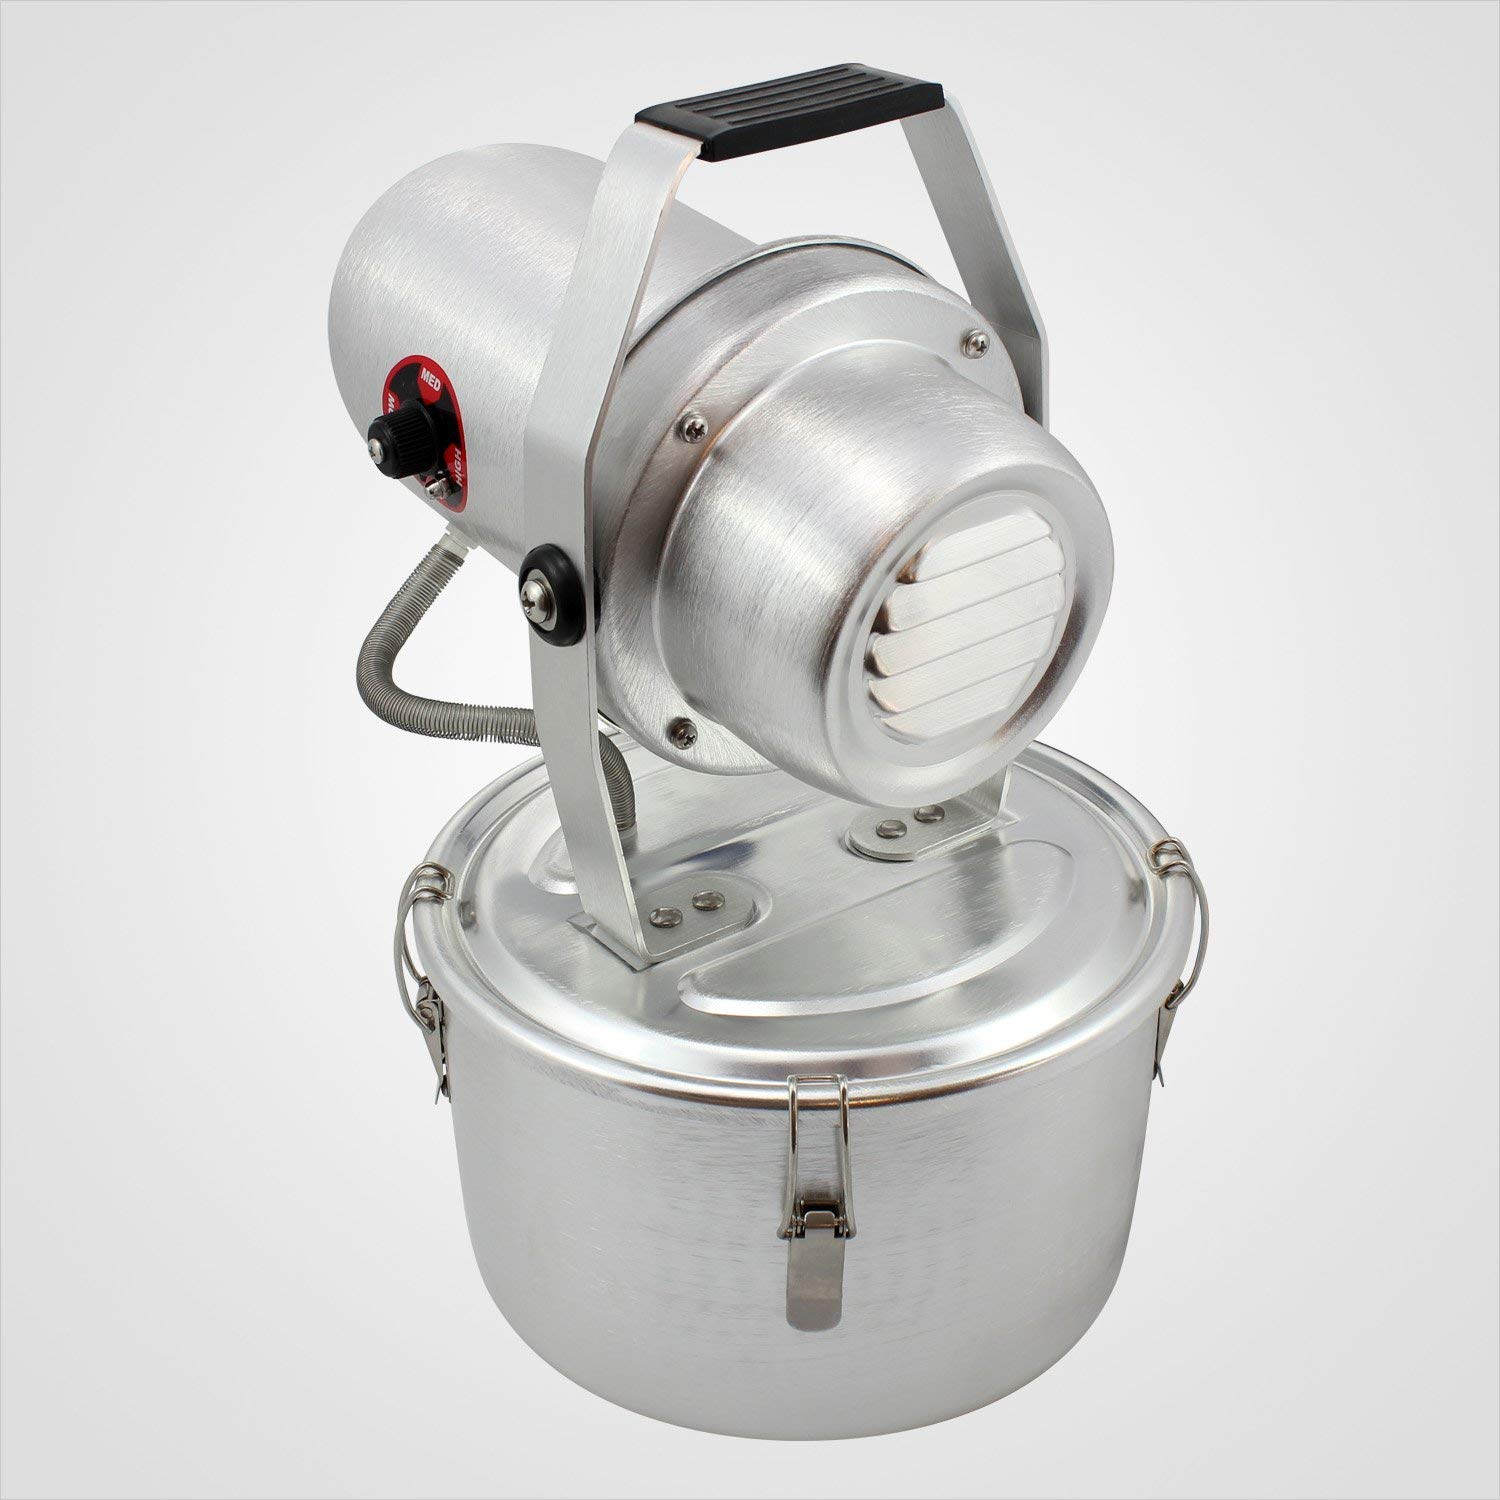 Top 5 Best Mosquito Fogger In 2019 - [Reviews & Buyer Guide]